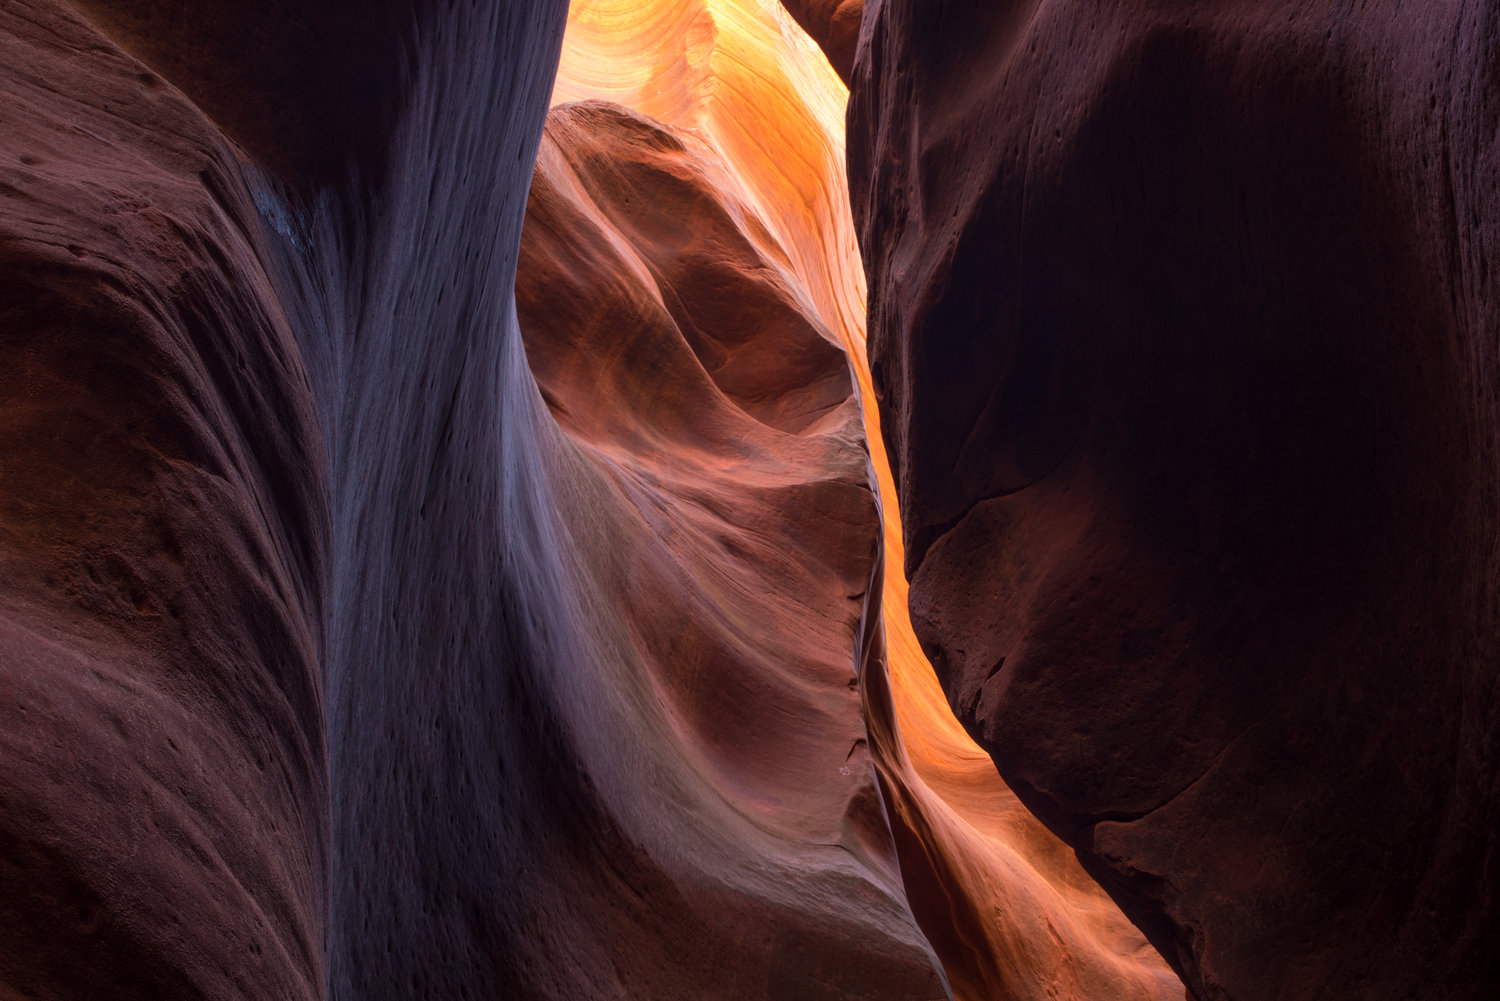 Slot Canyon in Southern Utah with Reflected Light